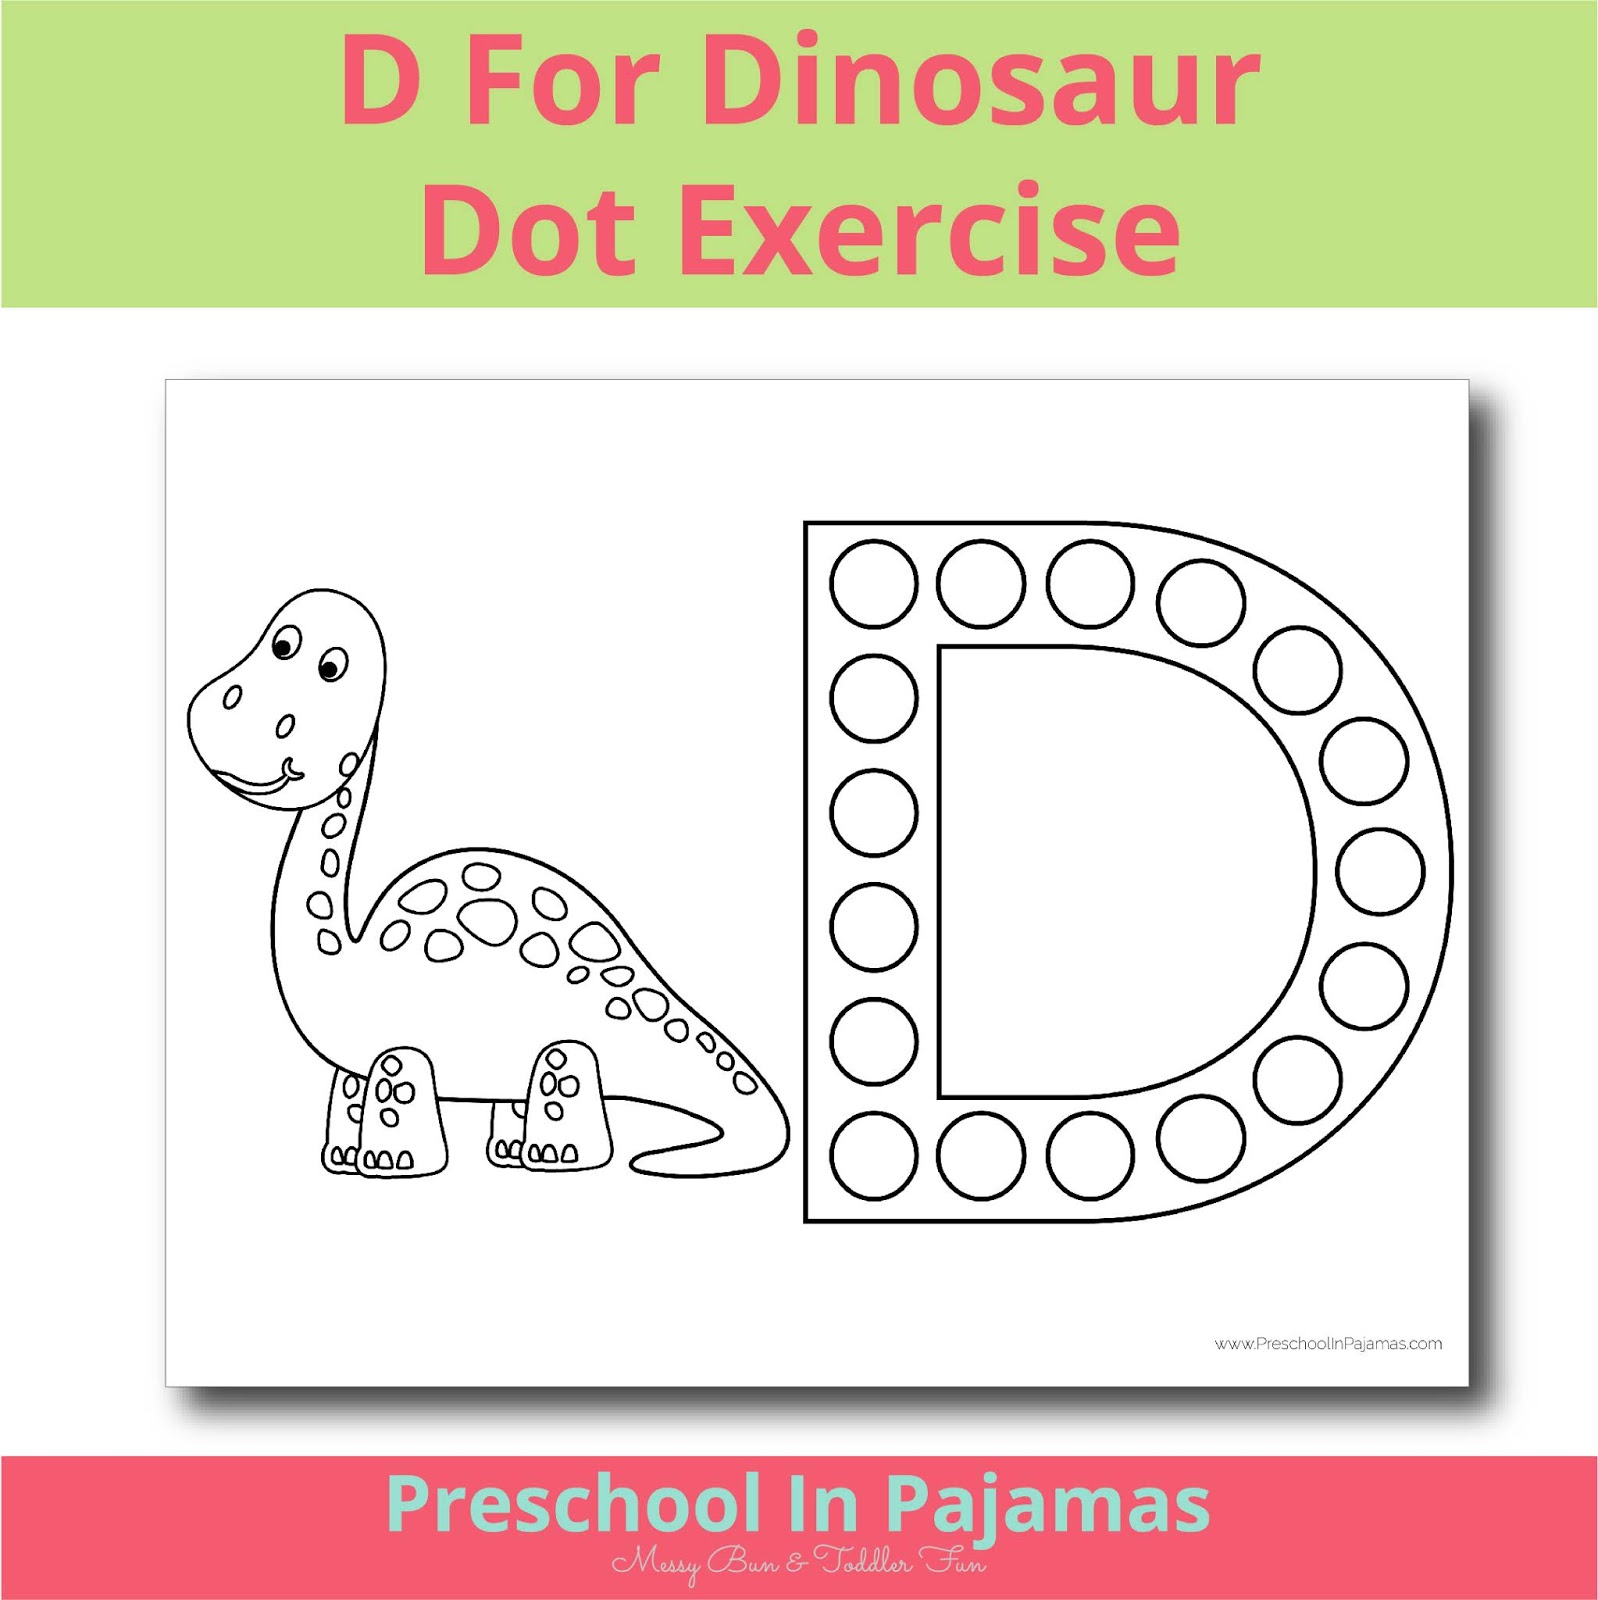 photo relating to Printable D&d Miniatures referred to as Absolutely free D IS FOR DINOSAUR DOT Fitness PRINTABLE WORKSHEET